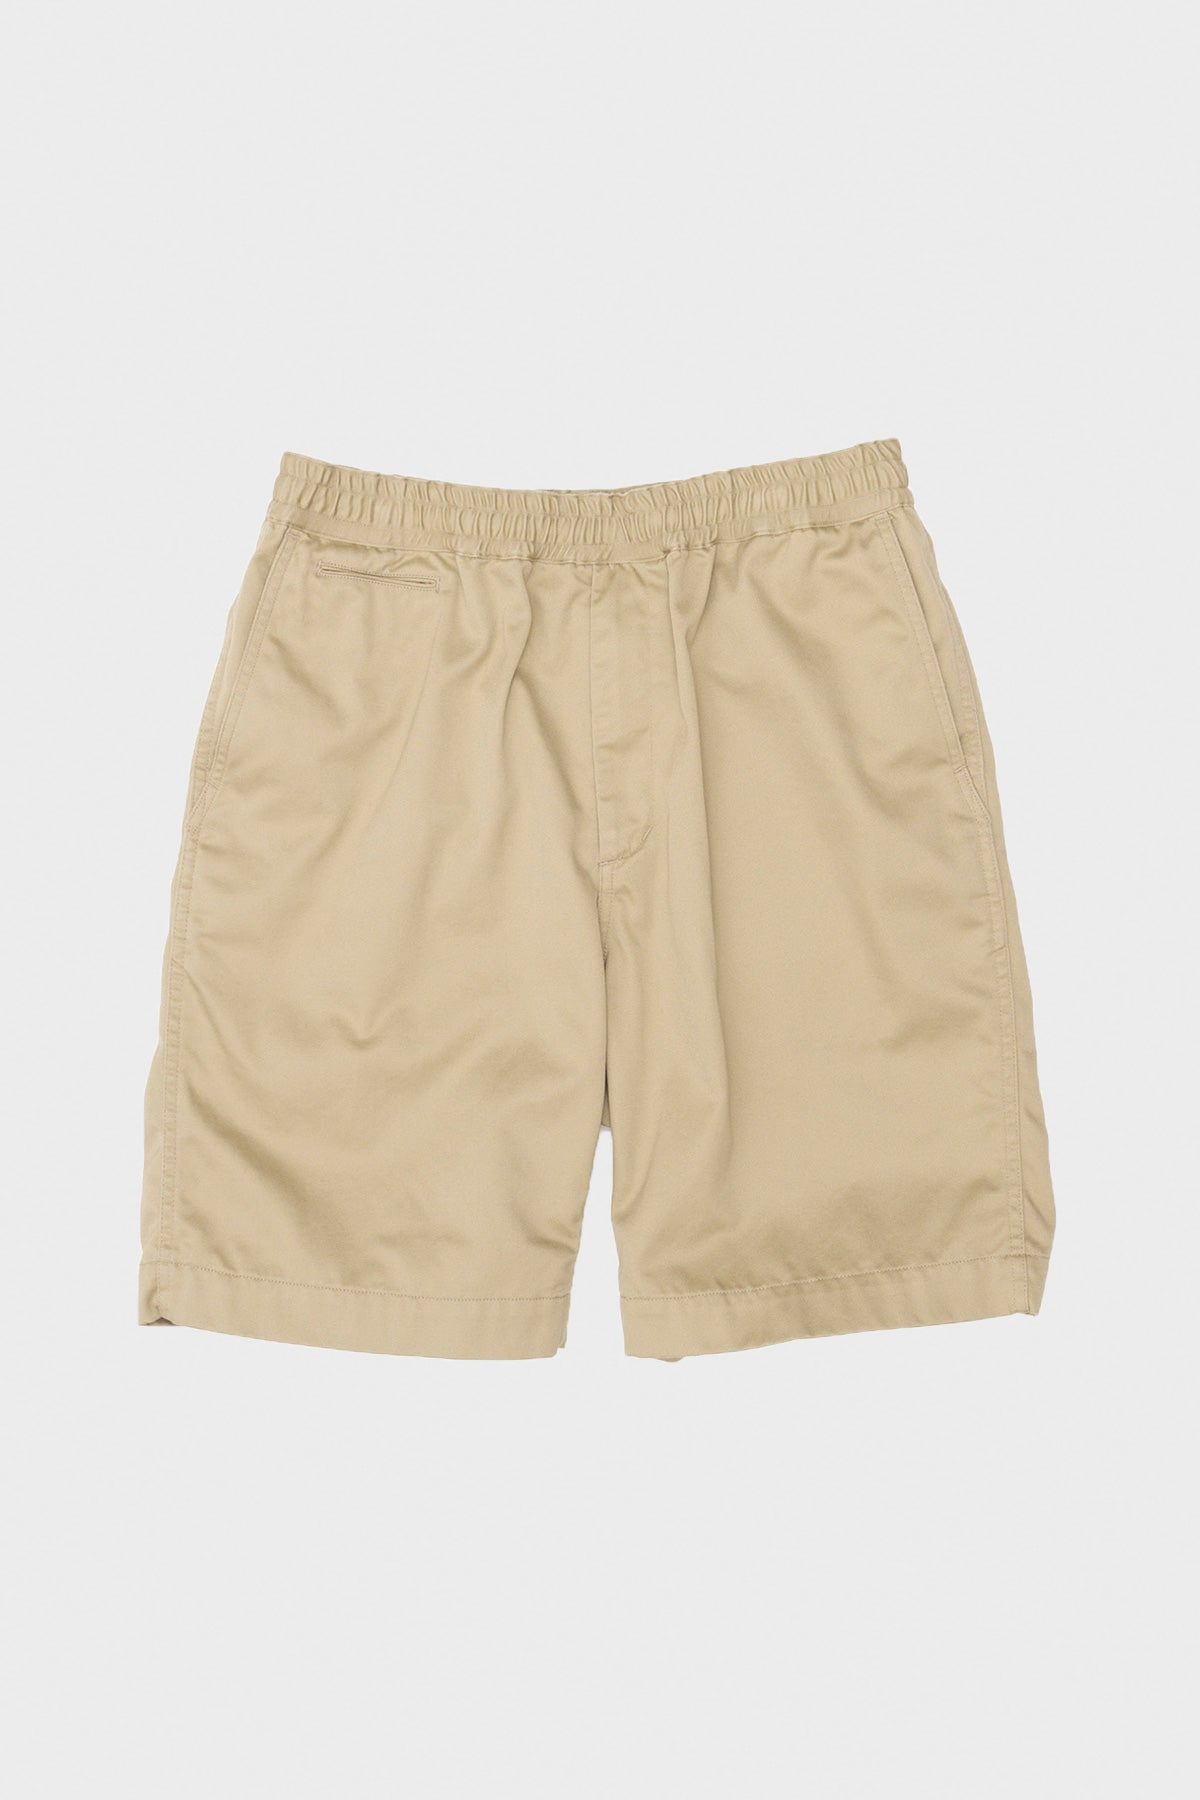 nanamica - Easy Chino Shorts - Khaki - Canoe Club